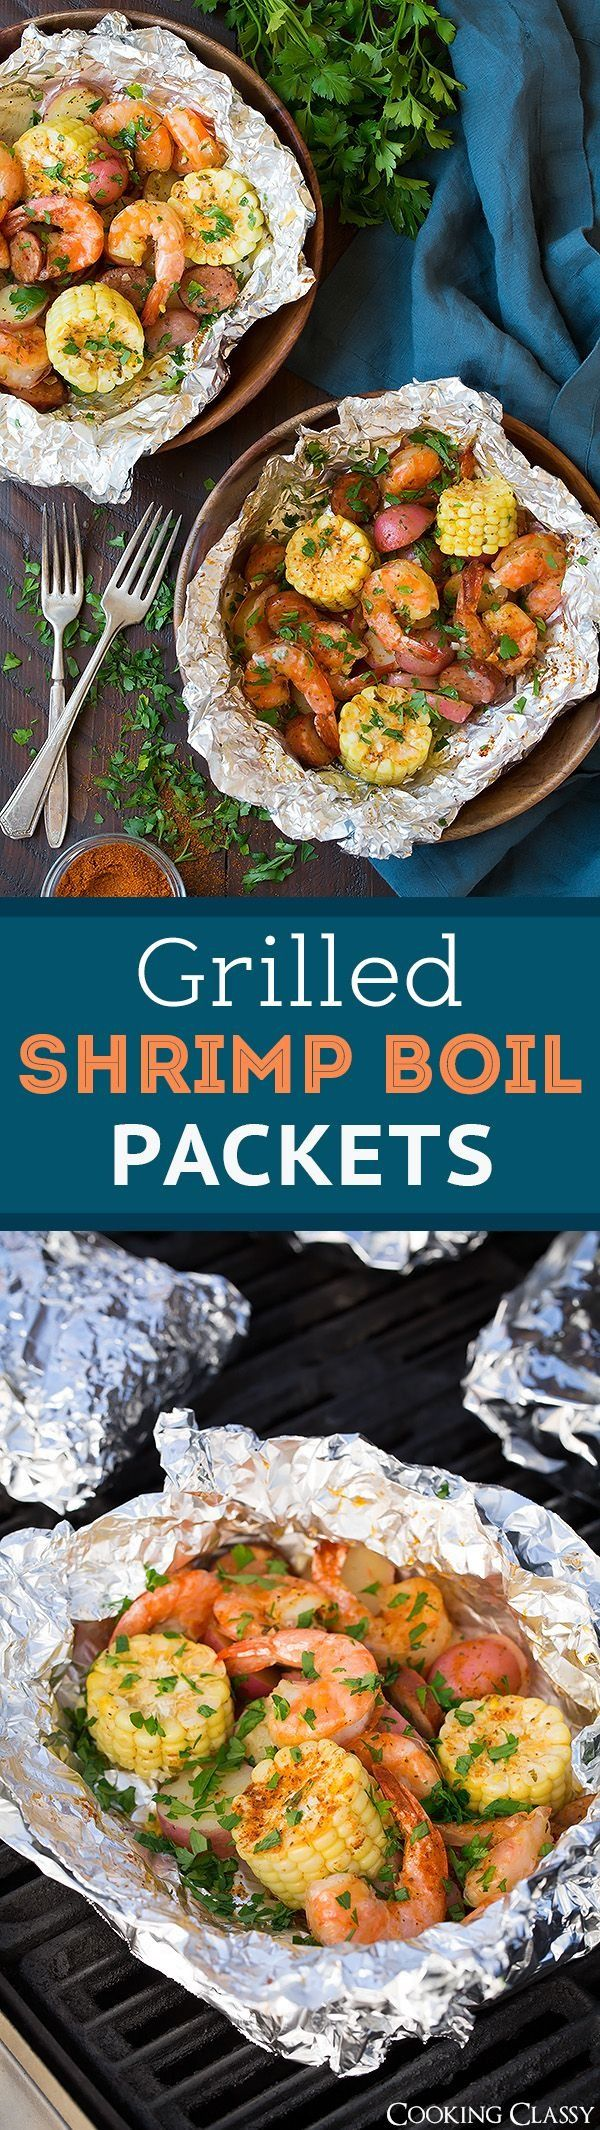 Add shrimp boil foil packets to your summer dinner menu asap!